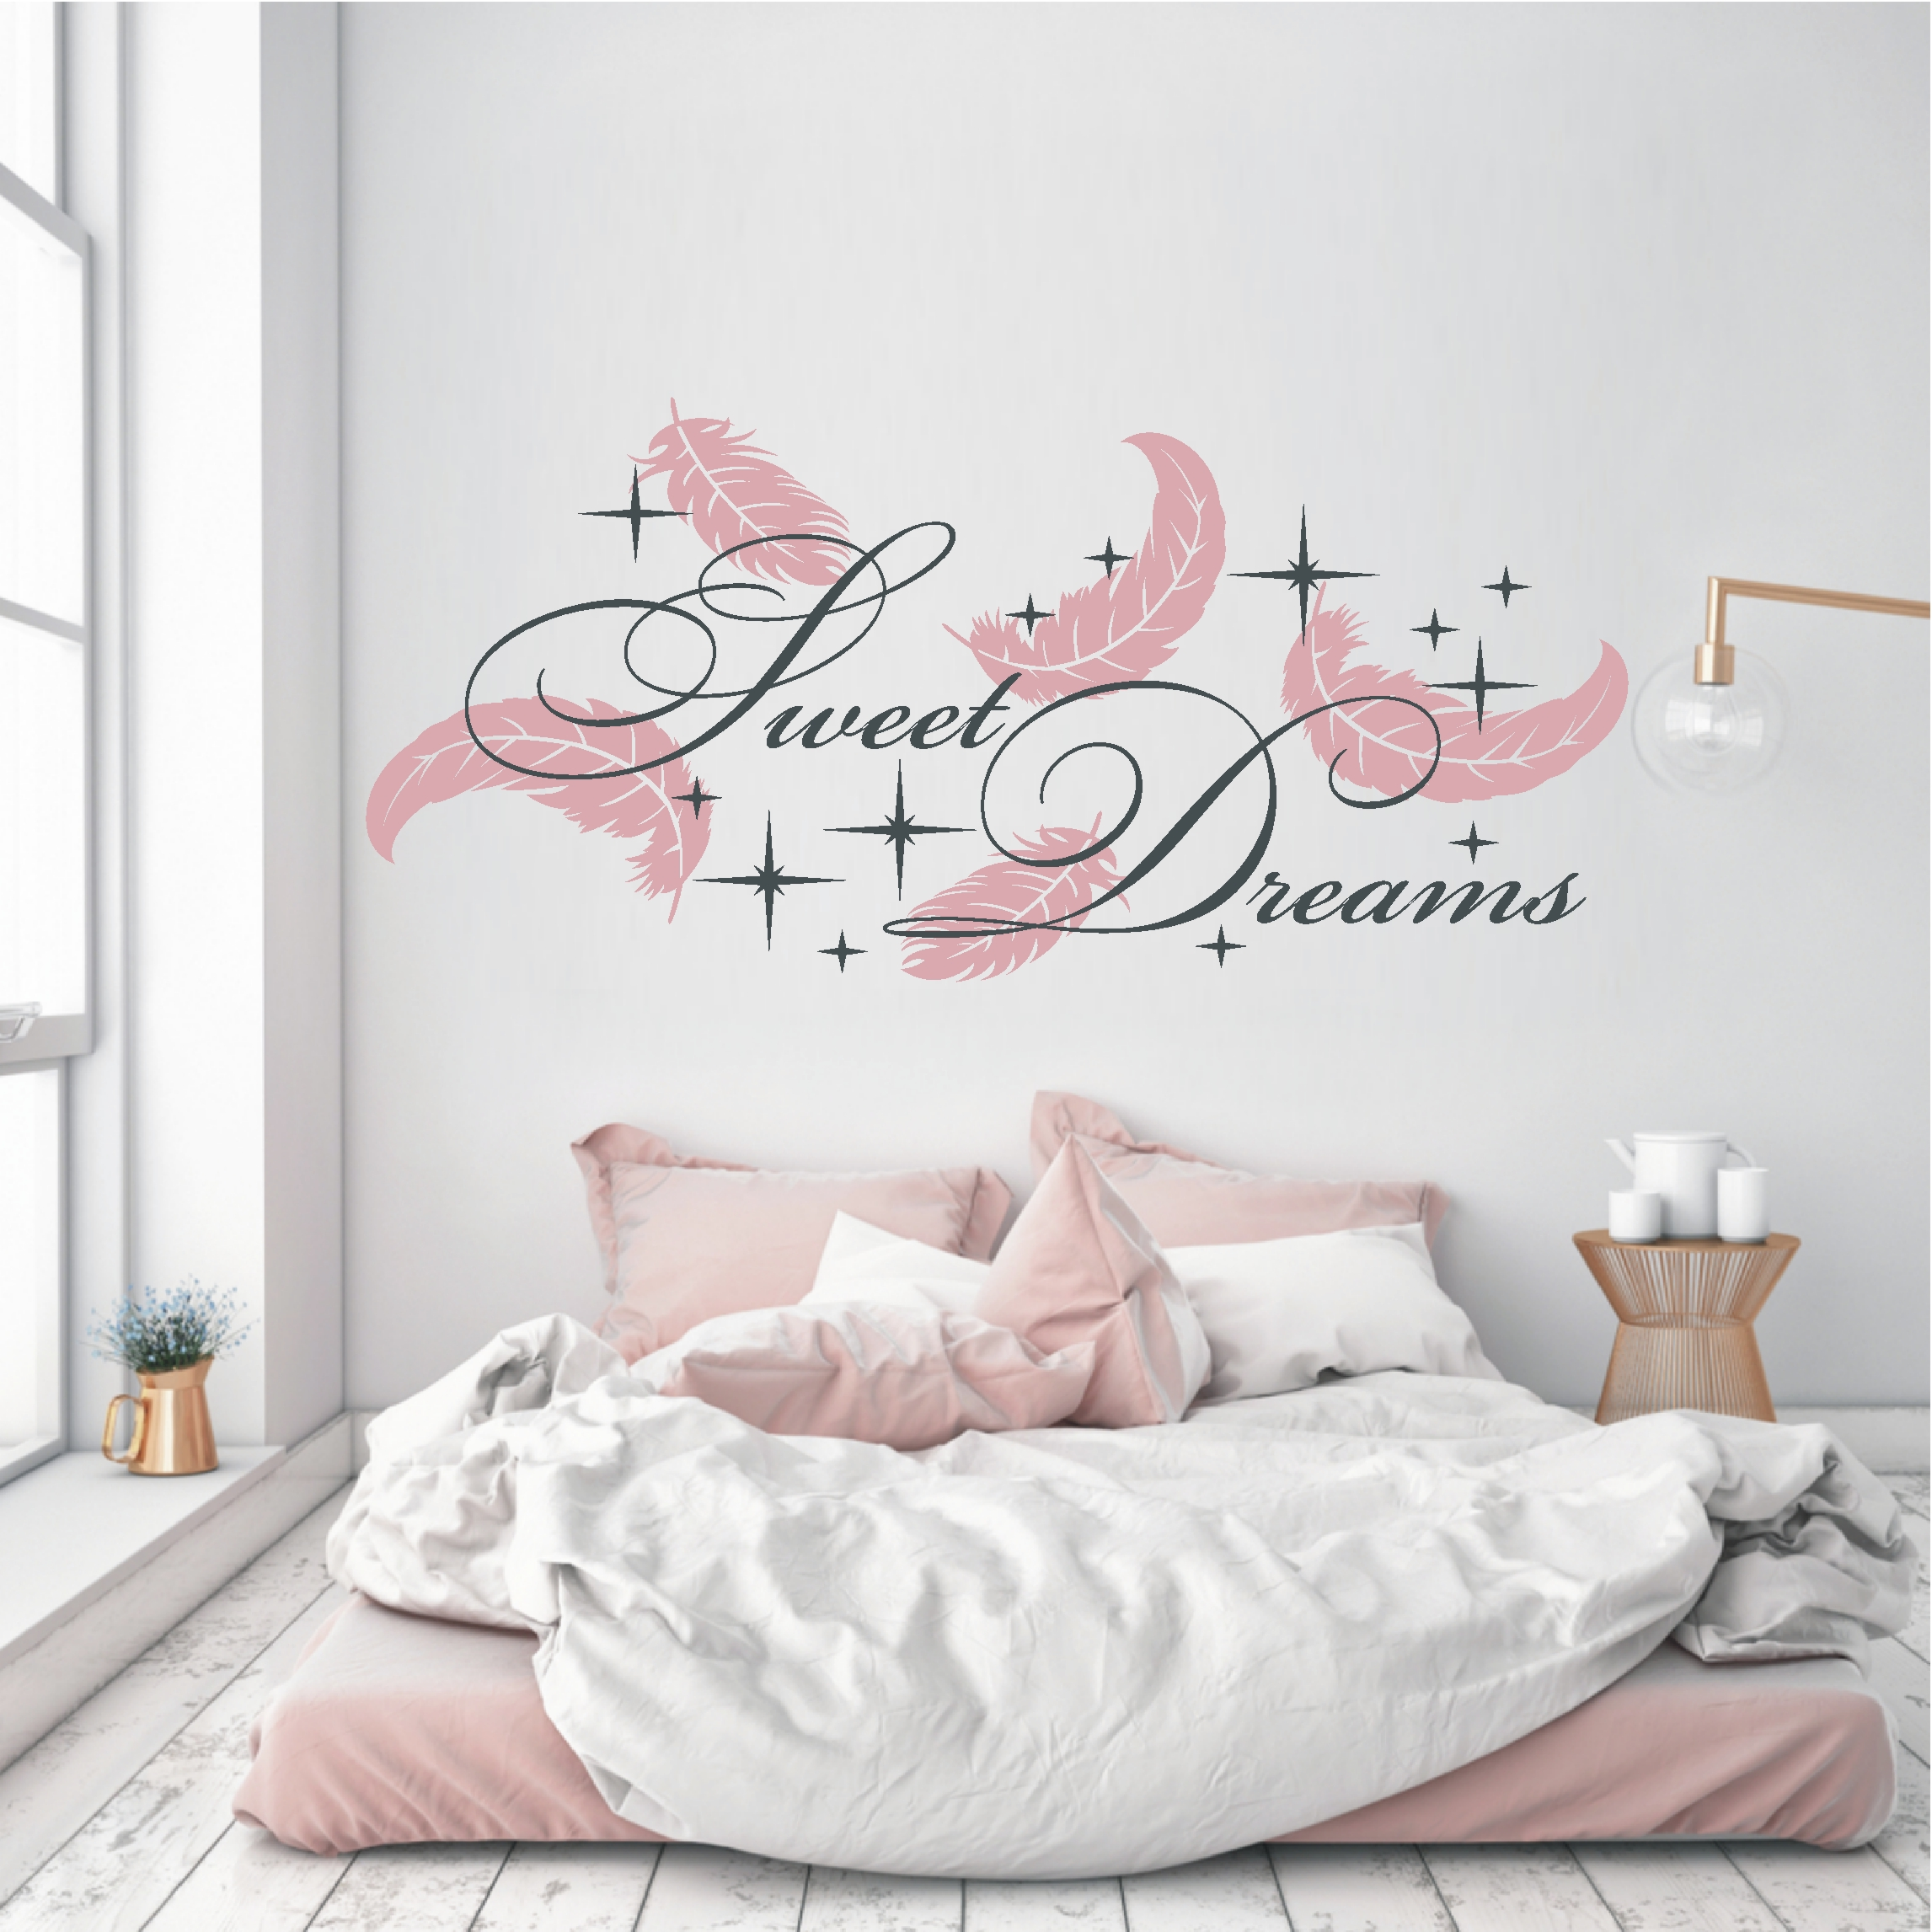 deko shop wandtattoo sweet dreams federn 2 farbig. Black Bedroom Furniture Sets. Home Design Ideas